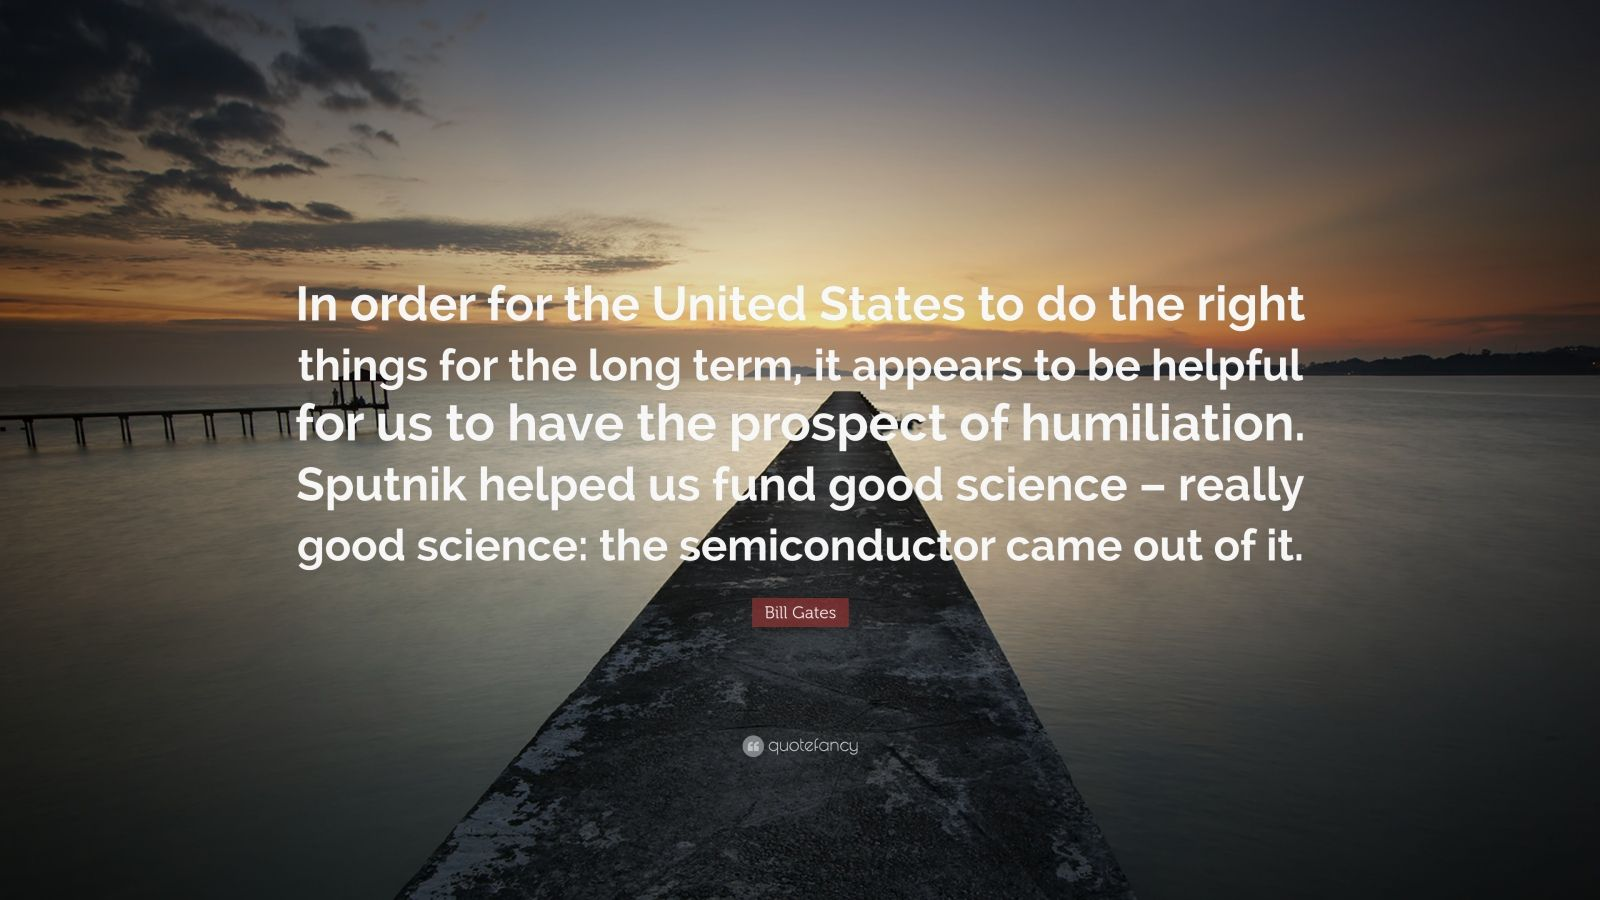 "Bill Gates Quote: ""In order for the United States to do the right things for the long term, it appears to be helpful for us to have the prospect of humiliation. Sputnik helped us fund good science – really good science: the semiconductor came out of it."""